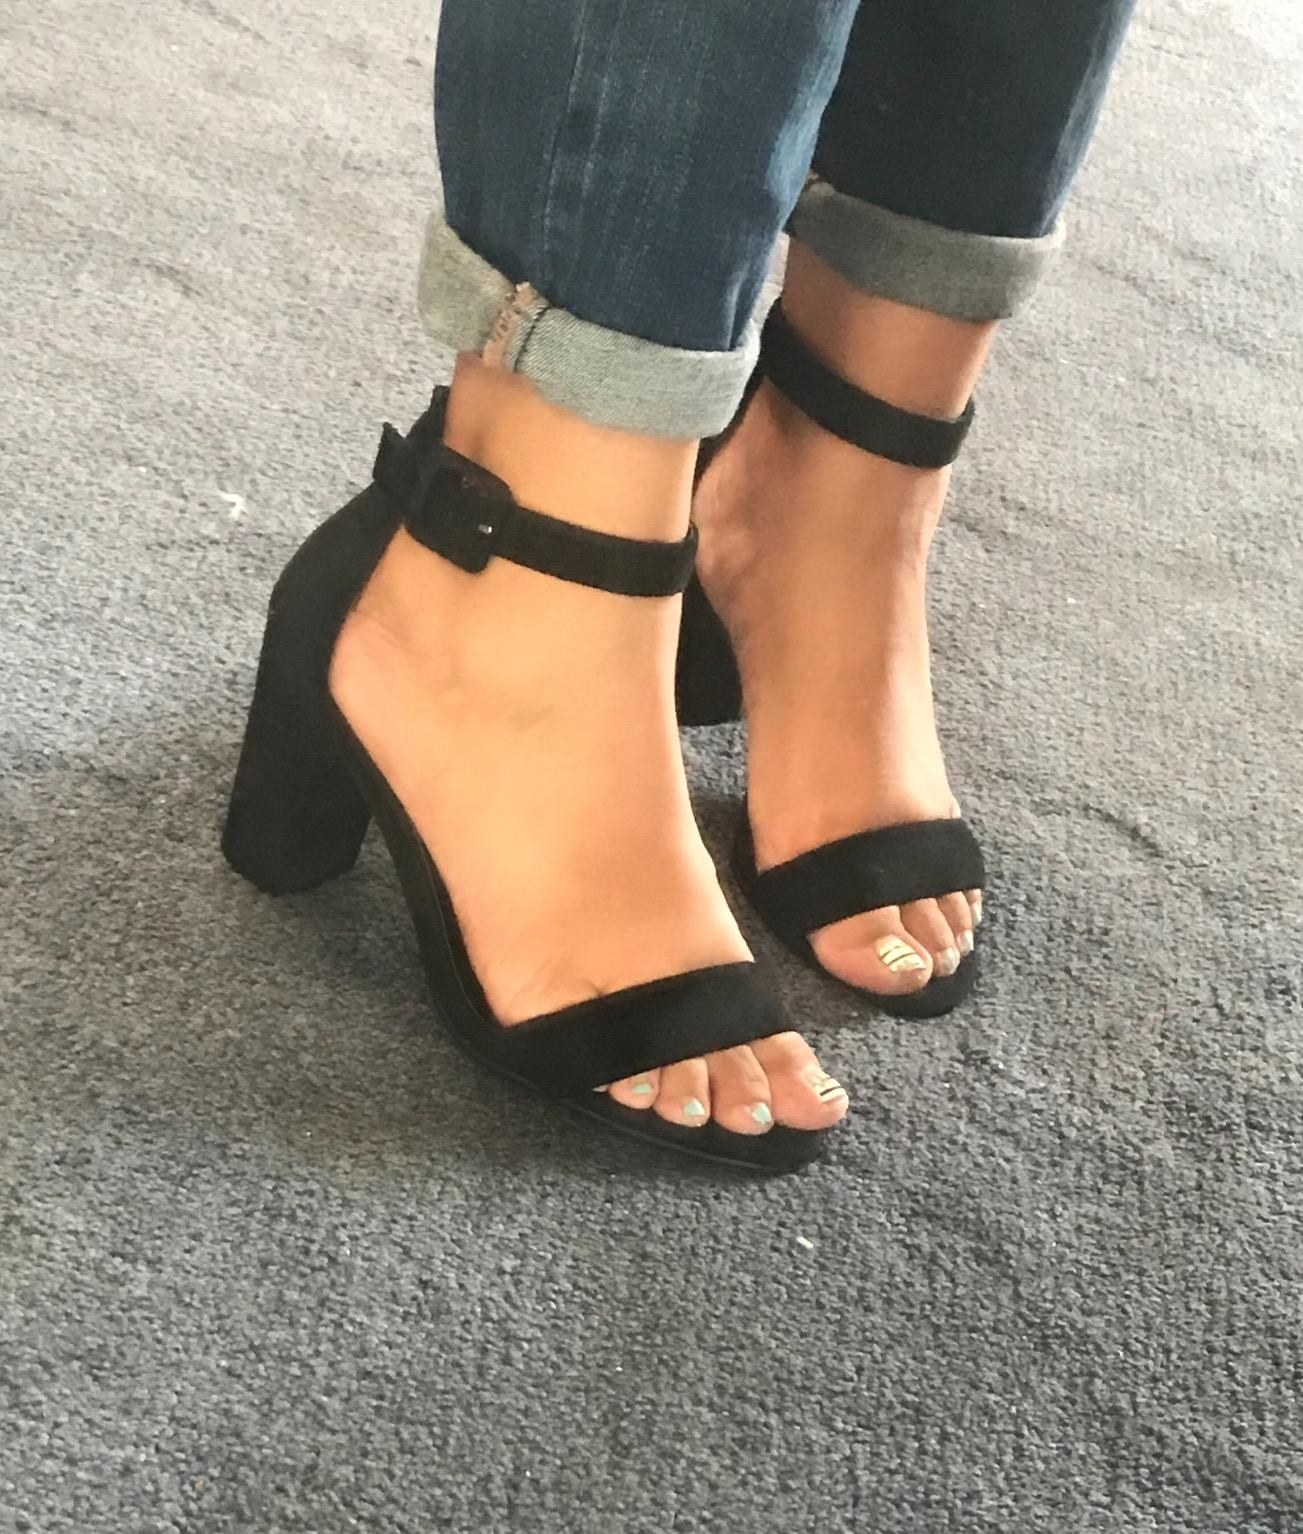 27a5f76189d 26 Comfy Pairs Of Heeled Sandals You Can Walk In All Day